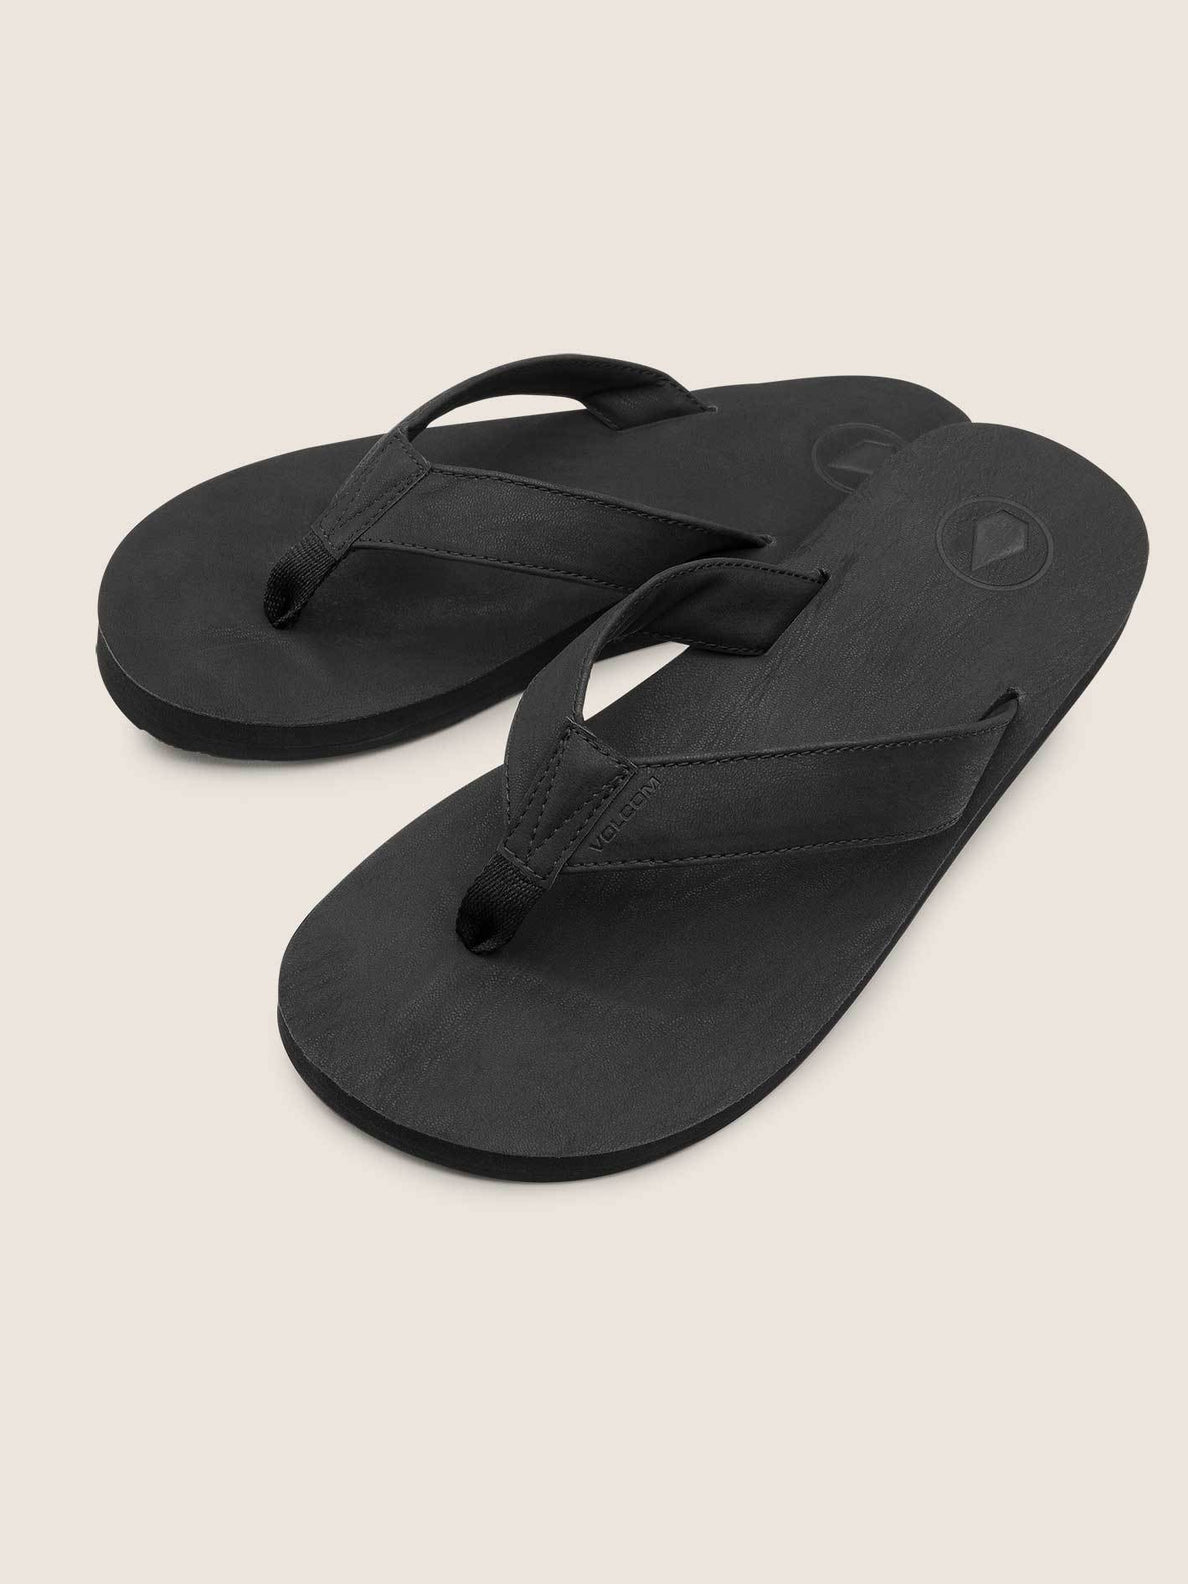 Fathom Sandals In Black, Front View